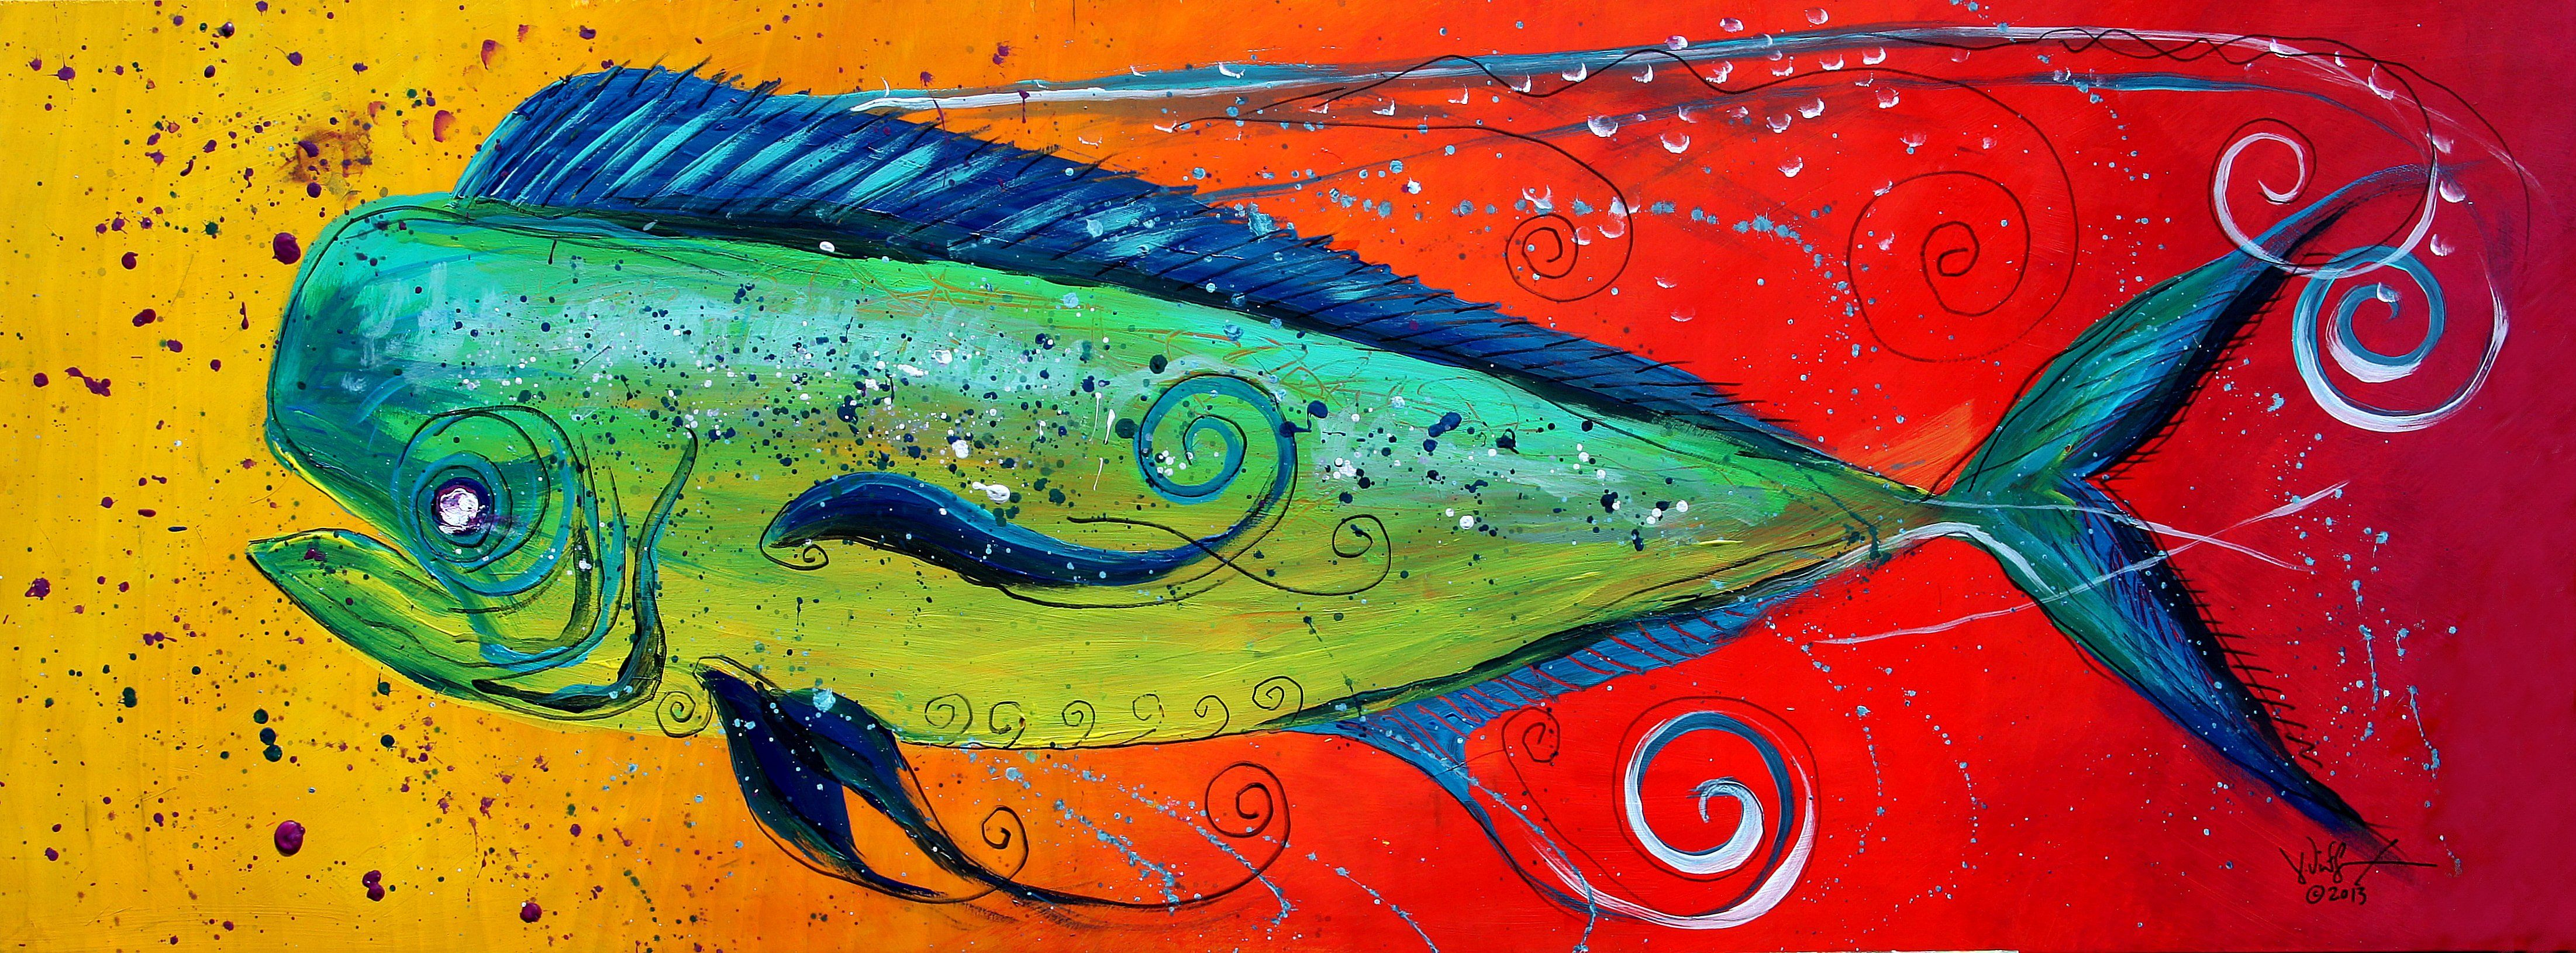 "Abstract Mahi Mahi"" (2013) by J. Vincent Scarpace 